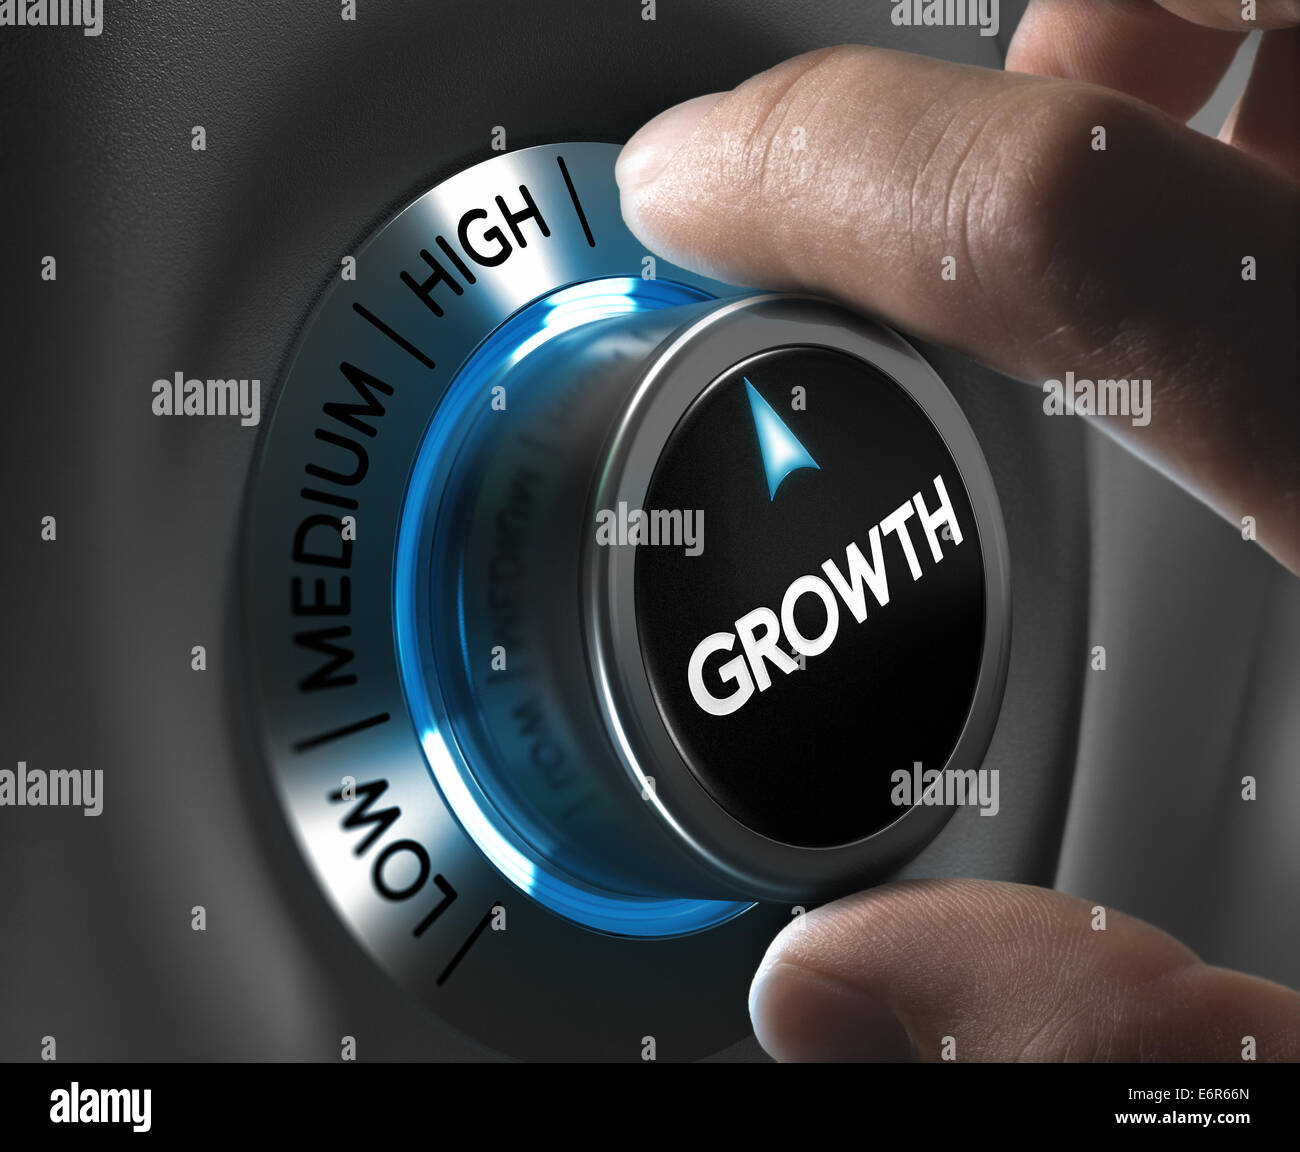 Growth button pointing the highest position with two fingers, blue and grey tones, Conceptual image for business - Stock Image